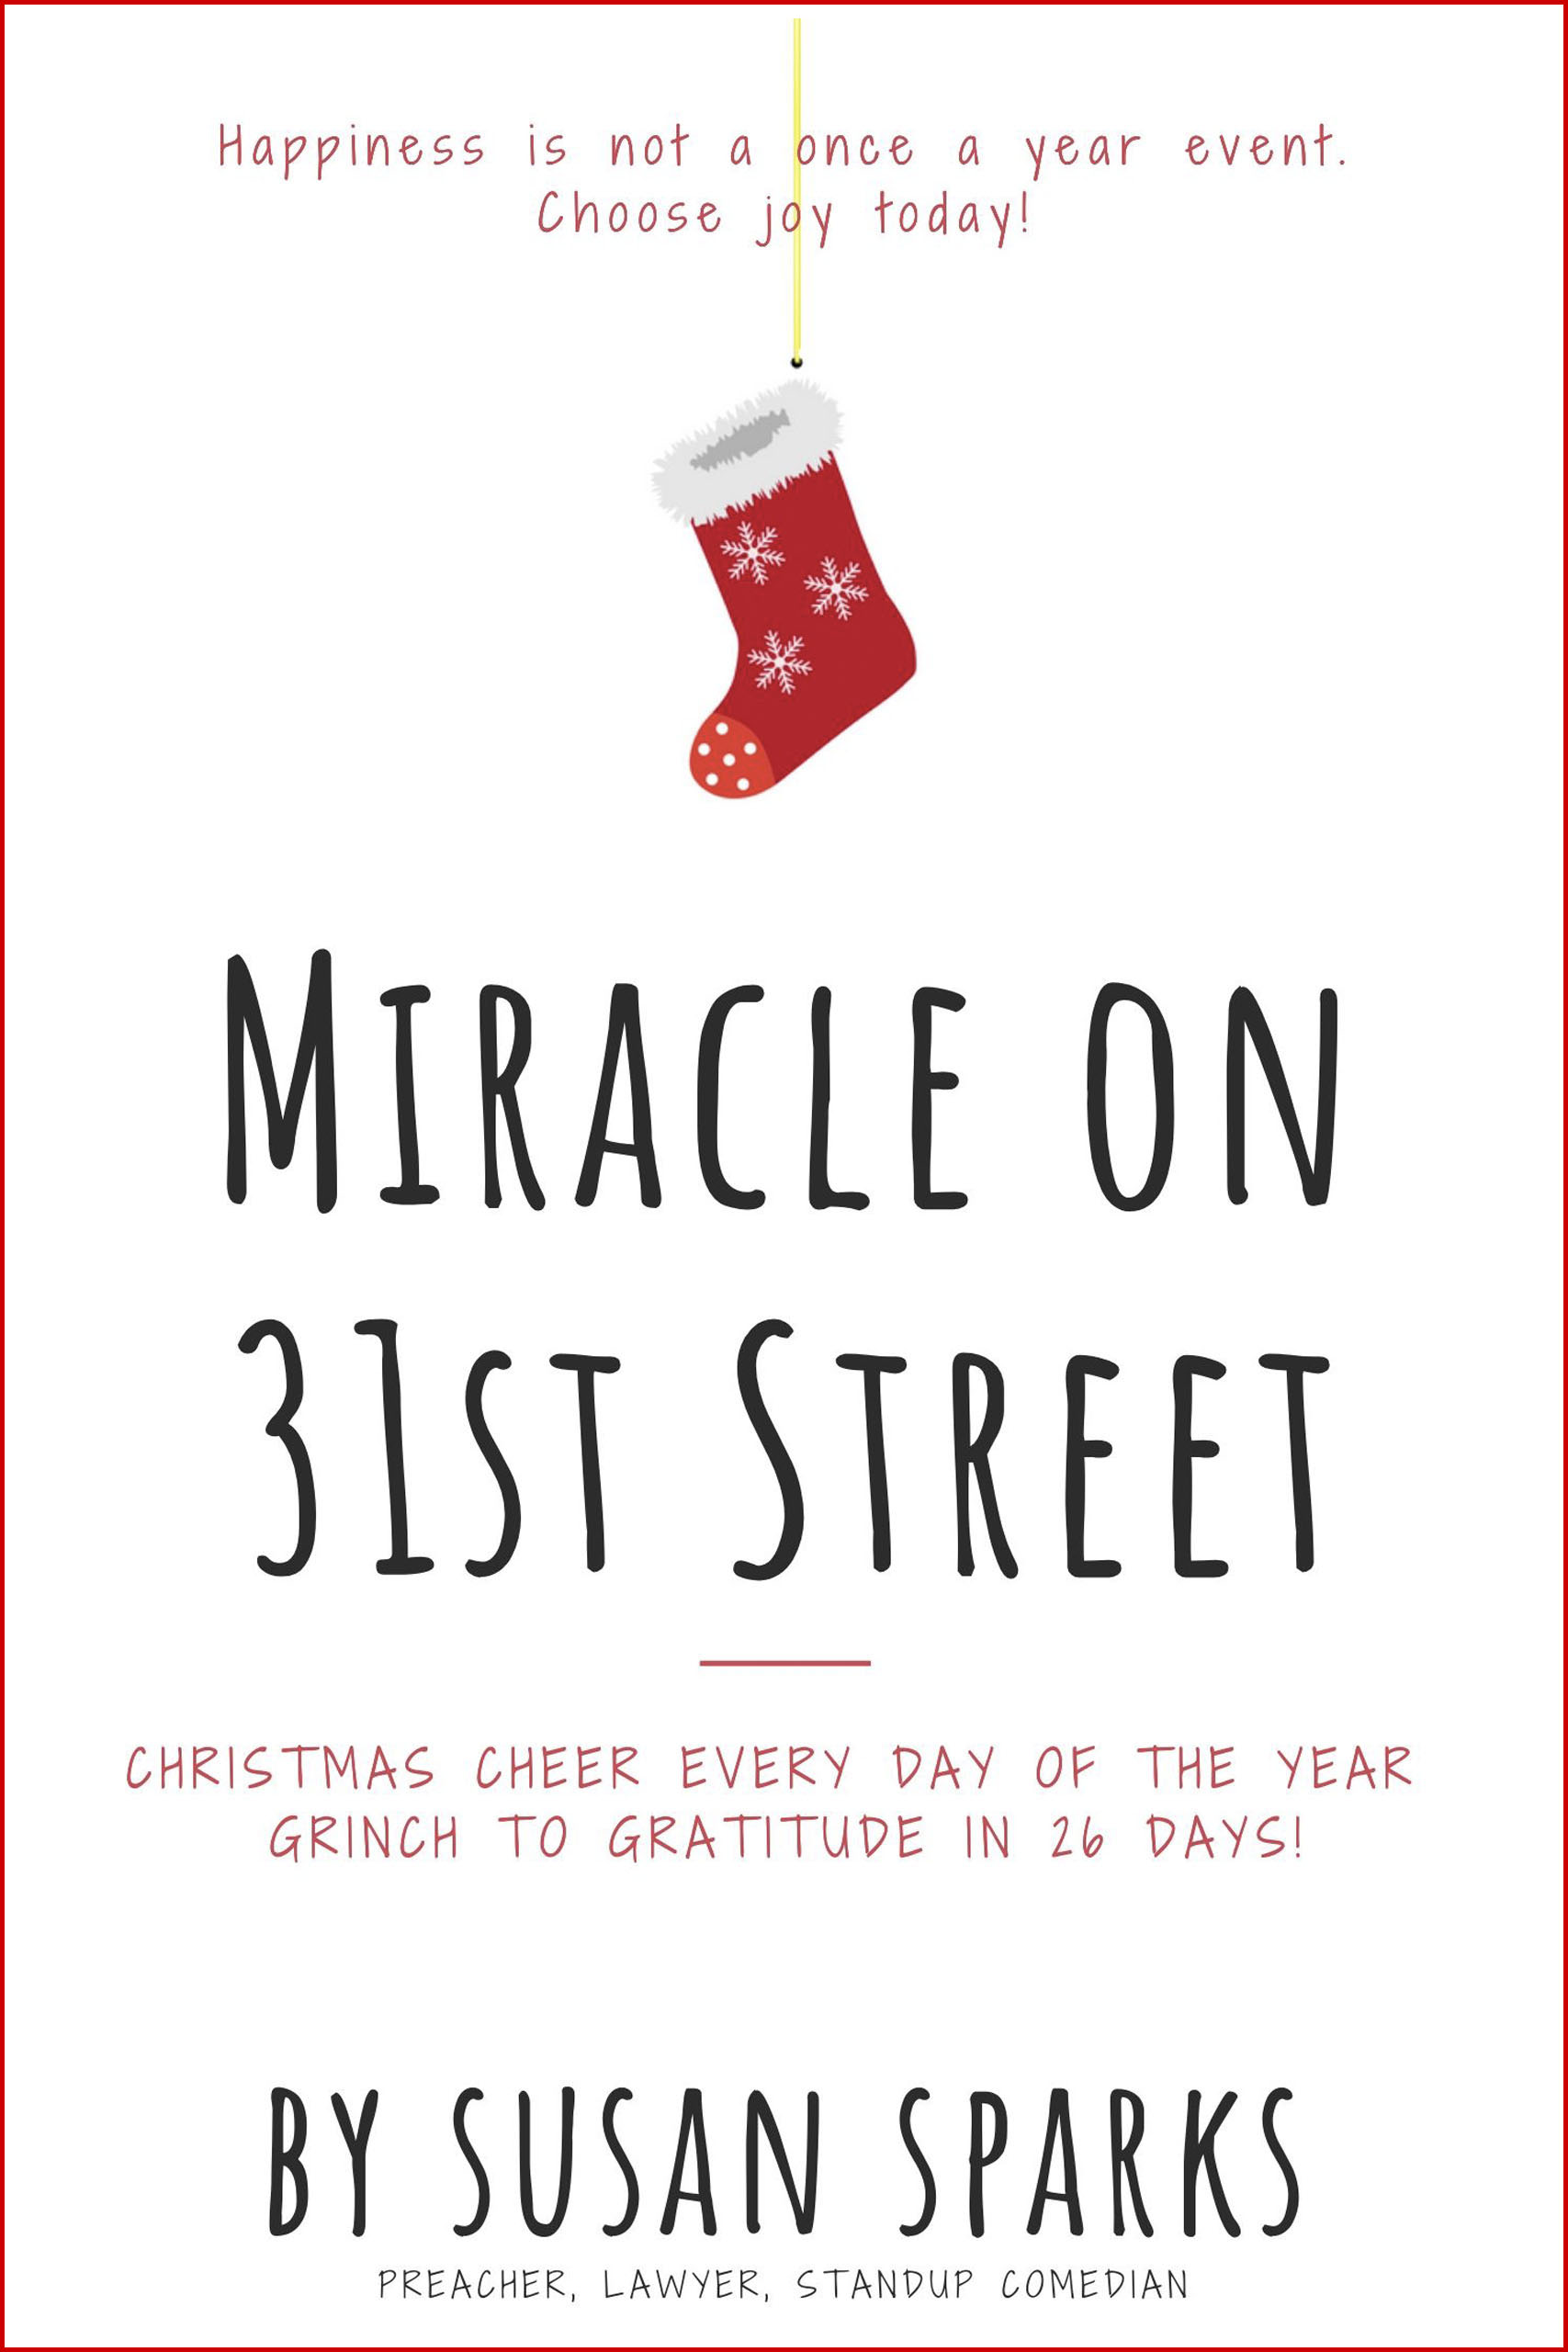 Miracle on 31st Street by Susan Sparks